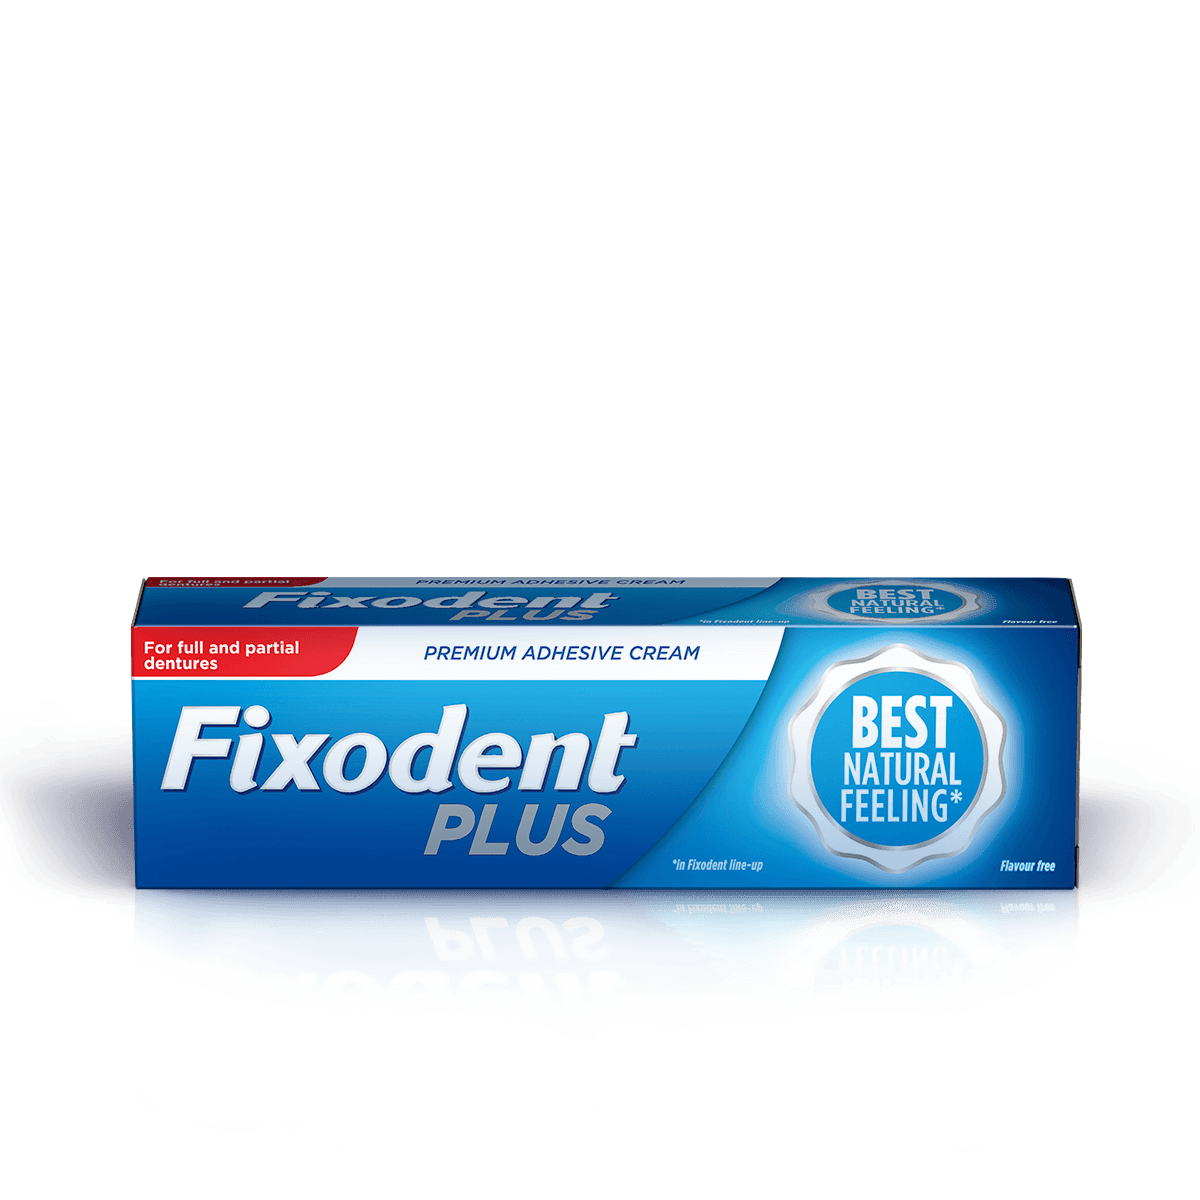 Fixodent Plus Best Natural Feeling Premium Denture Adhesive